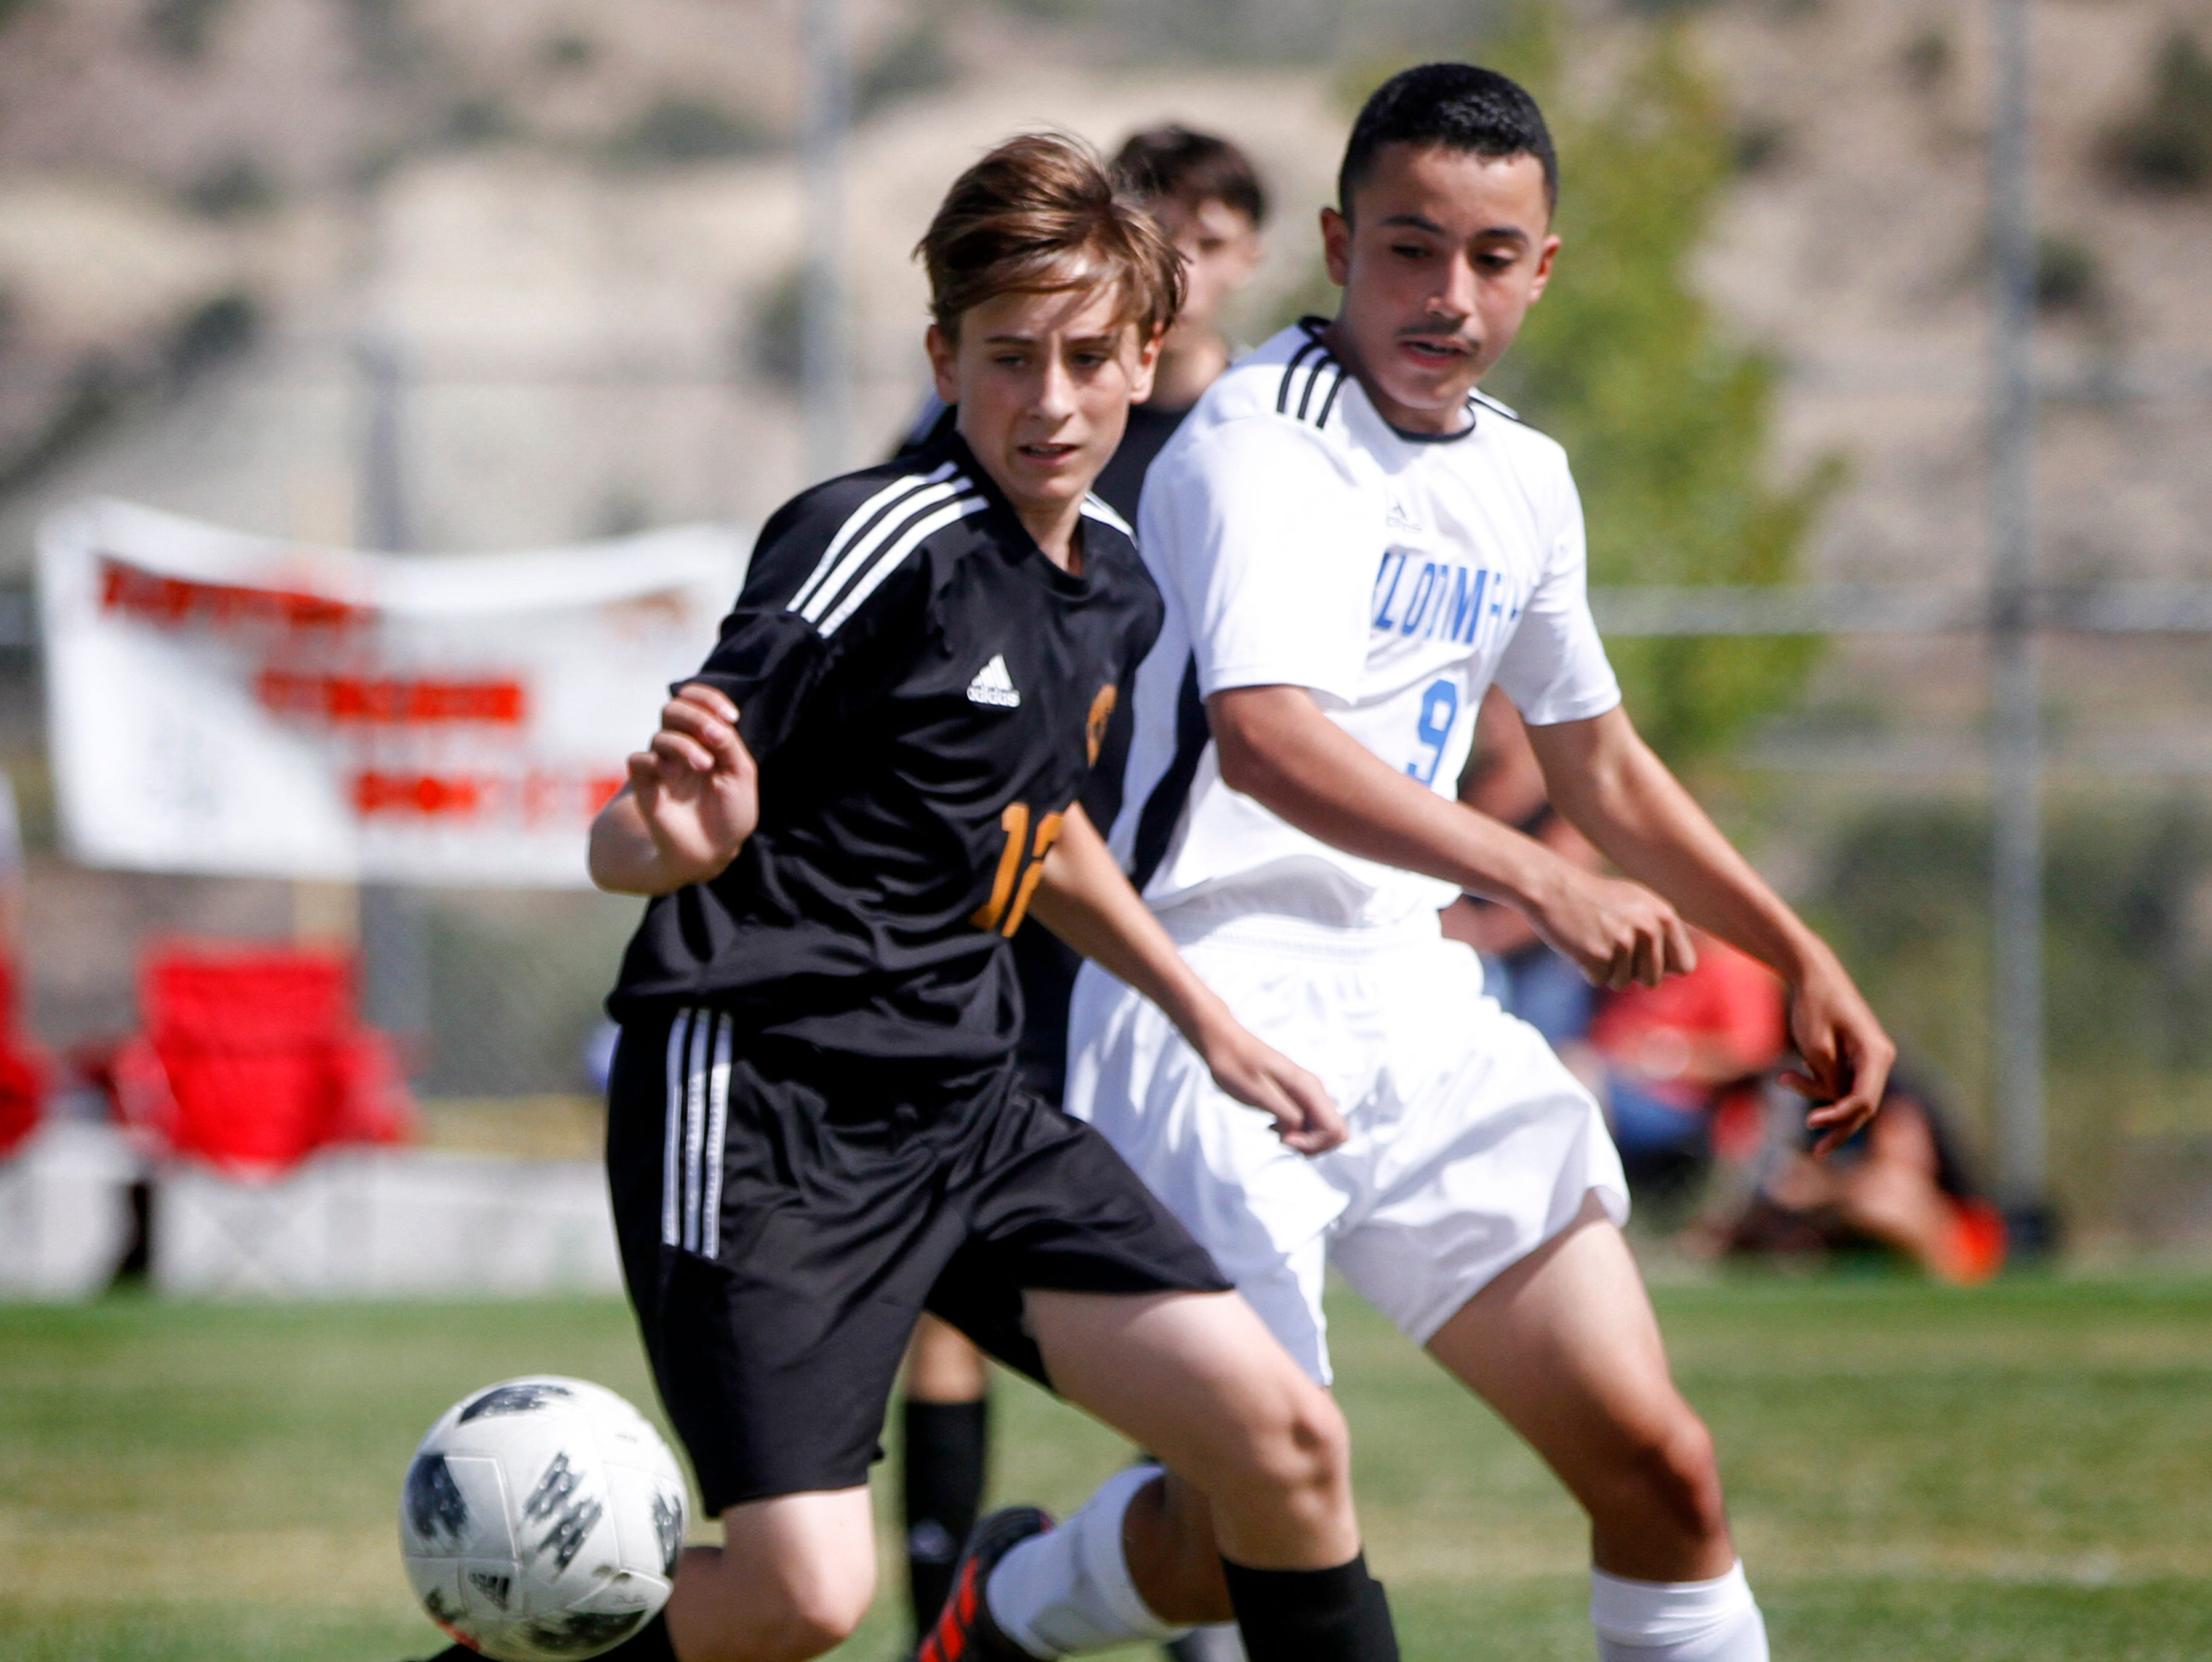 Aztec's Kolton Bruhn and Bloomfield's Jesus Jacquez chase the ball, Friday, Aug. 24, 2018 during their soccer game at the Aztec Tiger Soccer Complex.